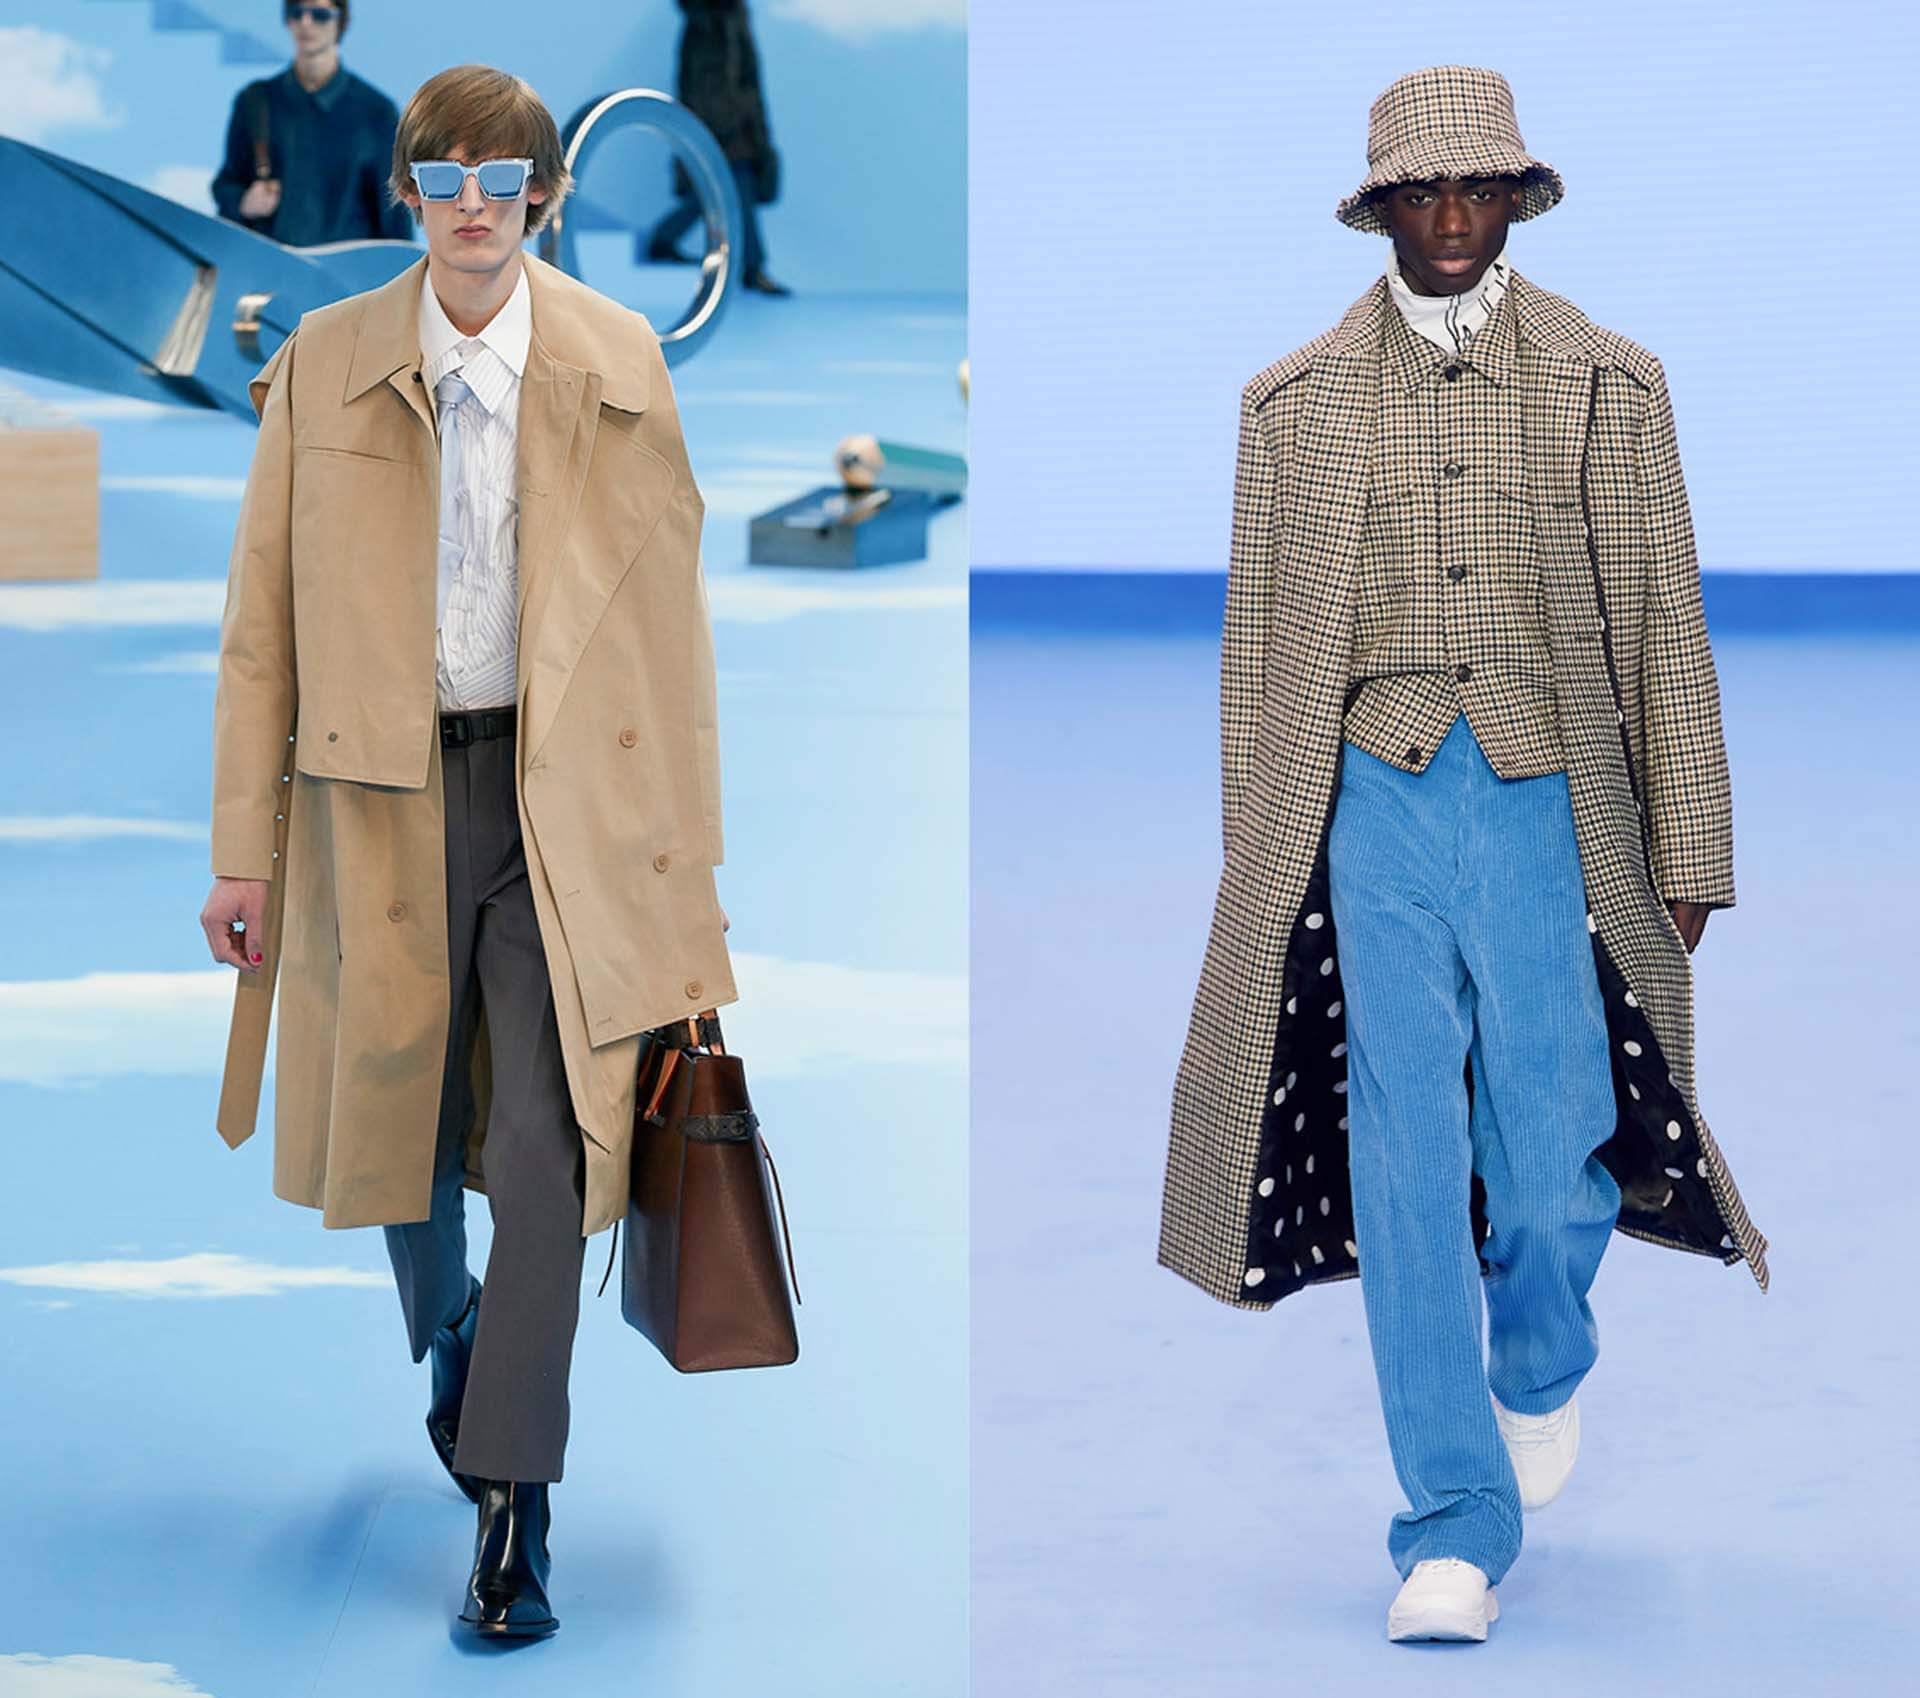 Büro Outfit, Runways von Louis Vuitton, Paul Smith